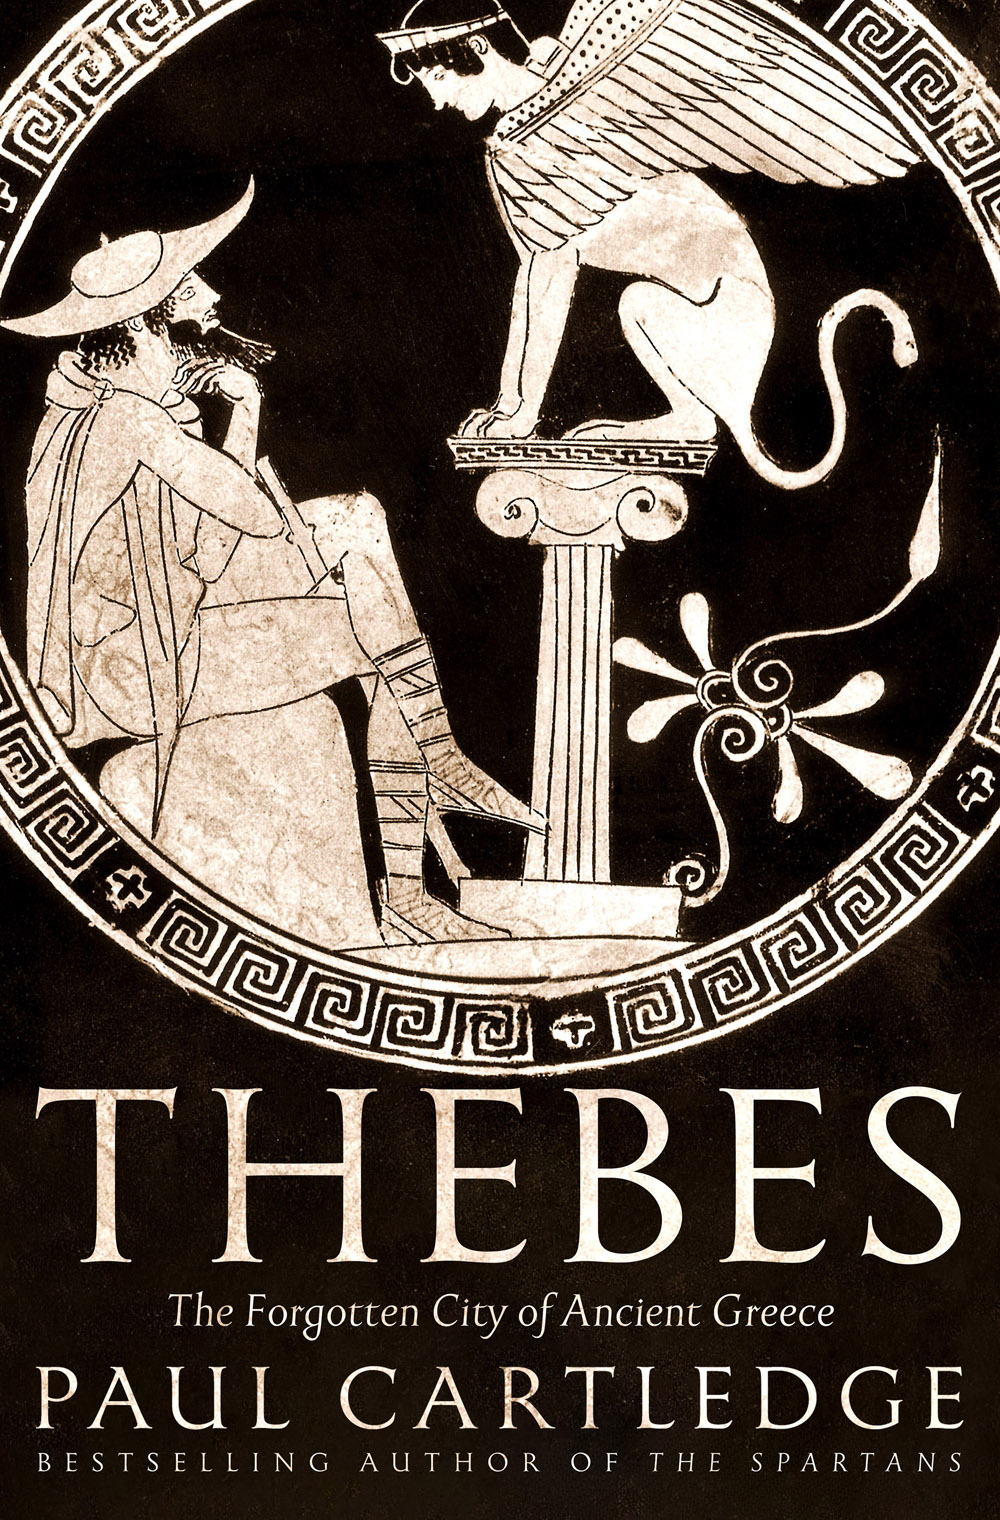 Thebes: The Forgotten City of Ancient Greece